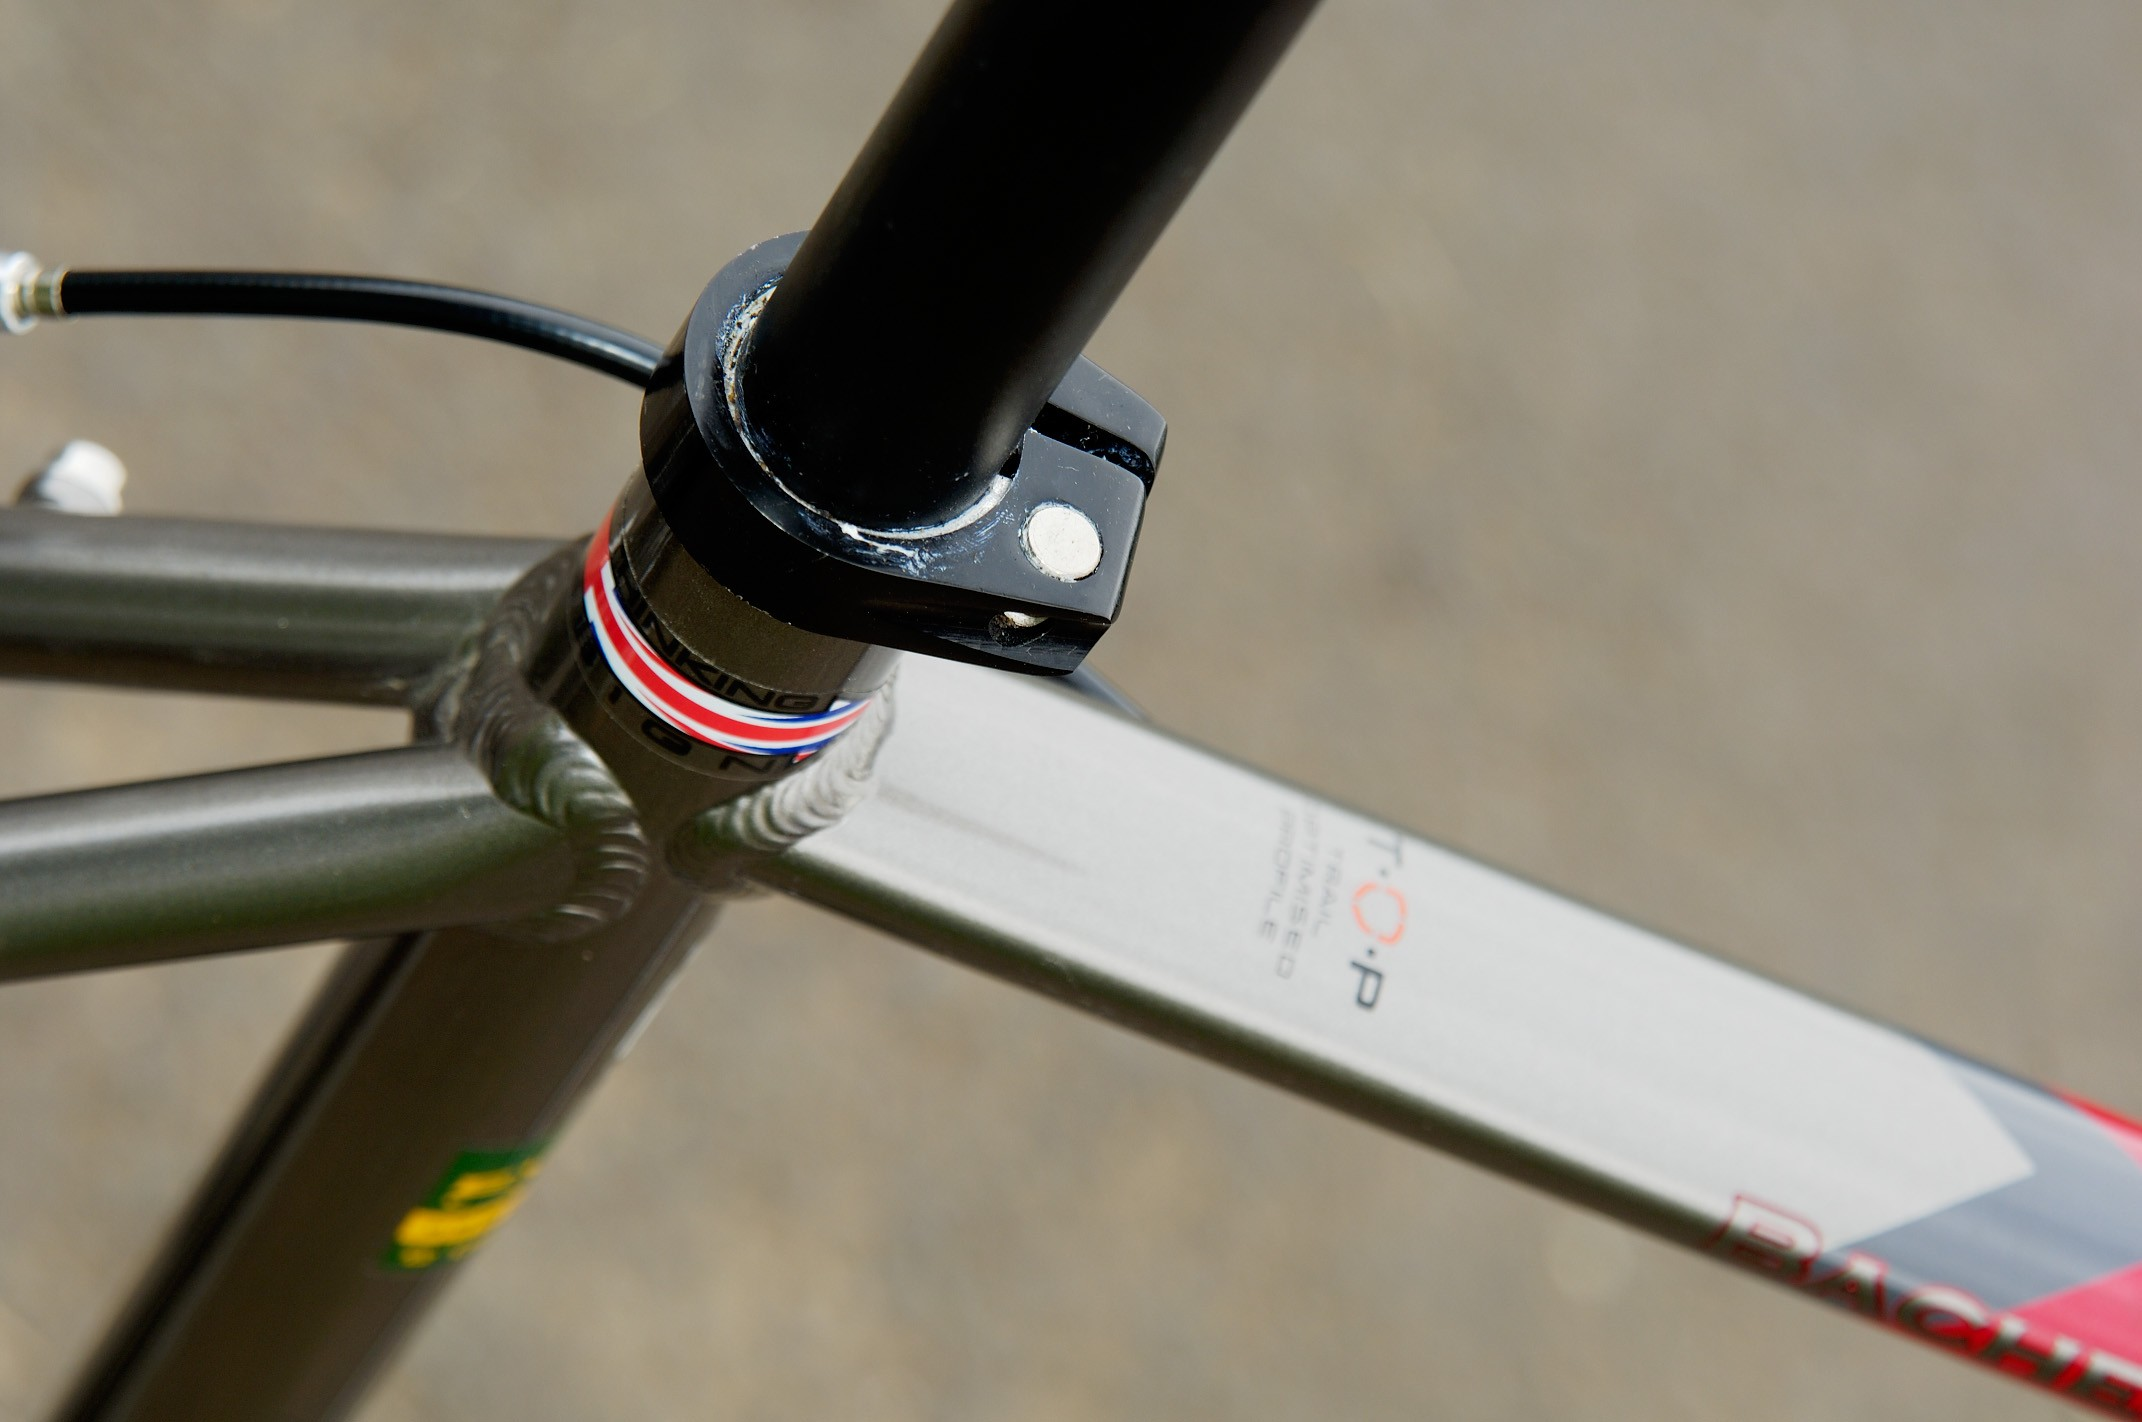 The distinctive top tube allows the use of lighter gauge tubing without resorting to industrial looking and weighty gusseting